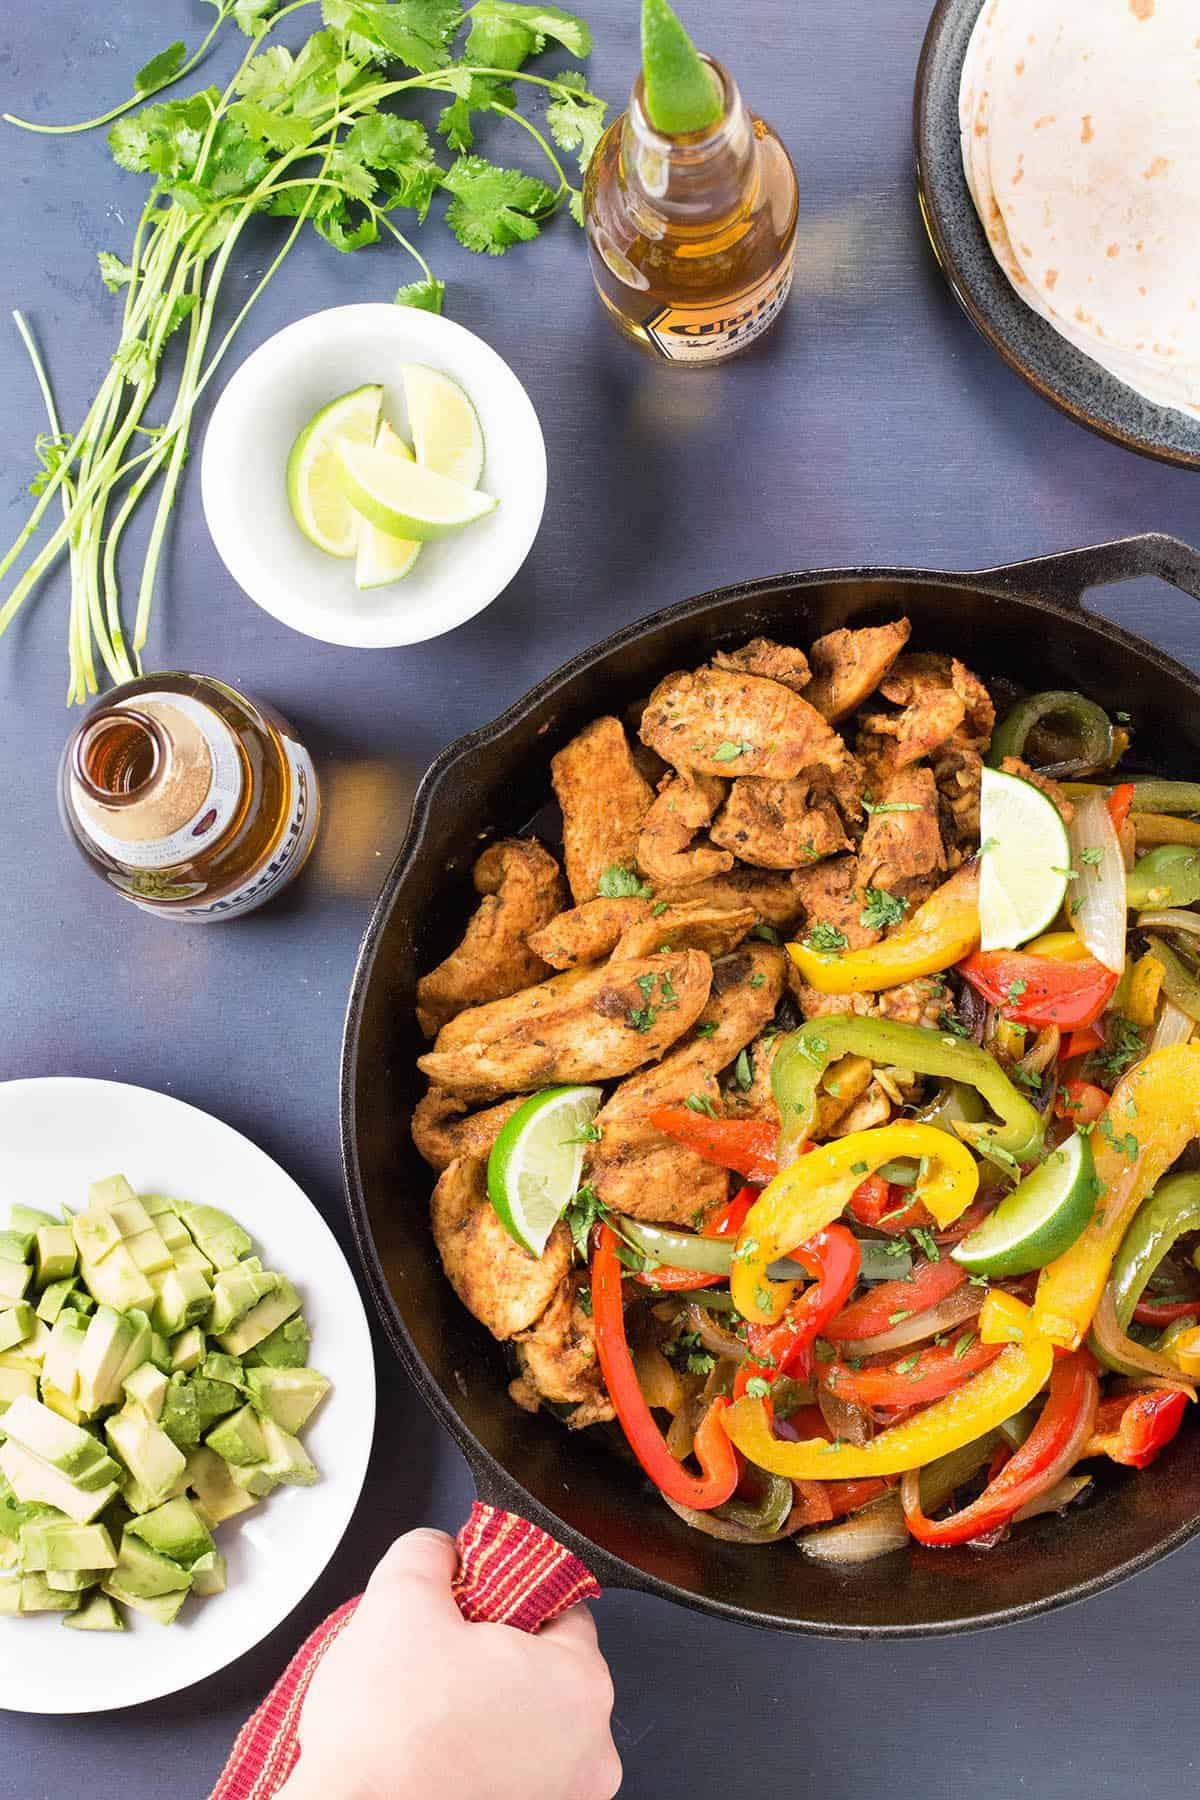 Braised Chicken Fajitas Recipe